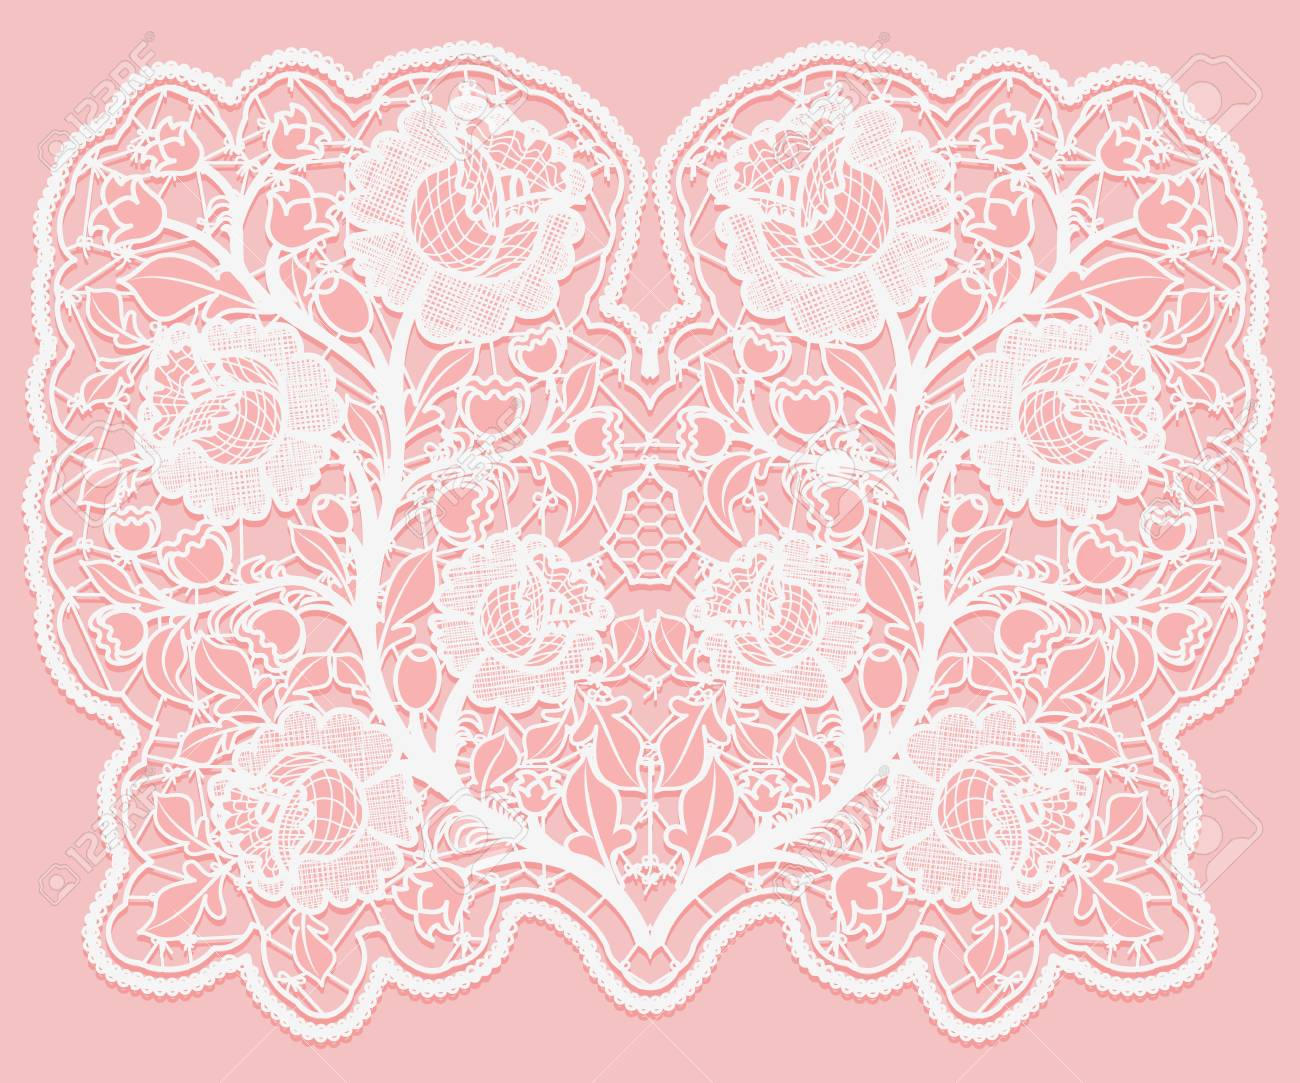 Lacy Floral Bouquet White Lace Flowers And A Grid On A Pink